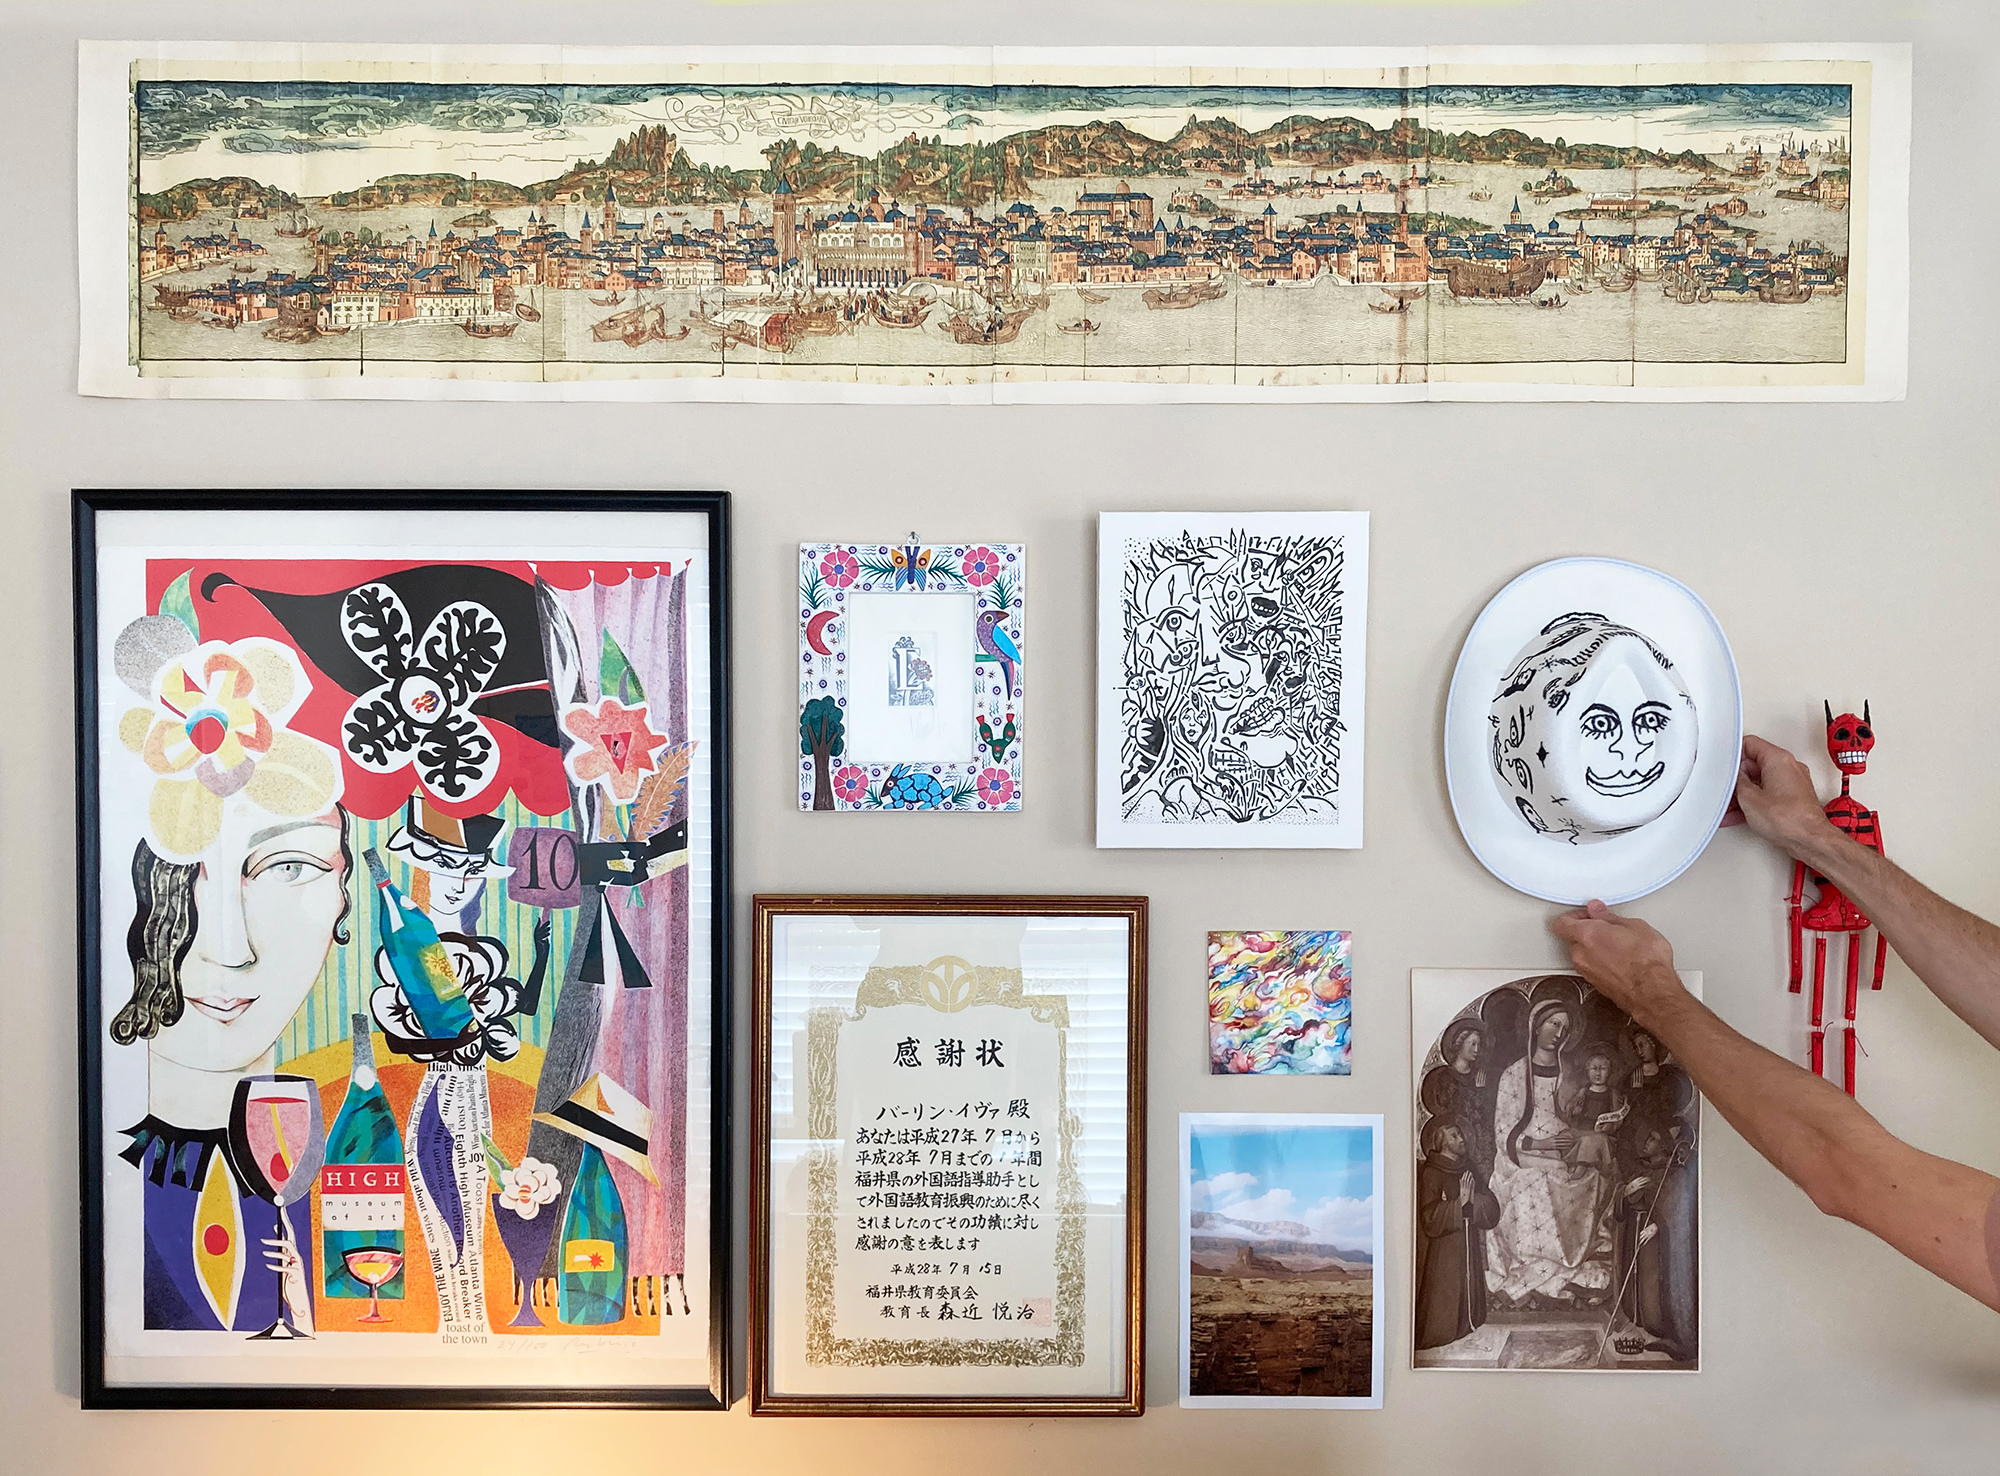 A grouping of artworks and objects, with a pair of hands reaching in from the right side to adjust a hat.